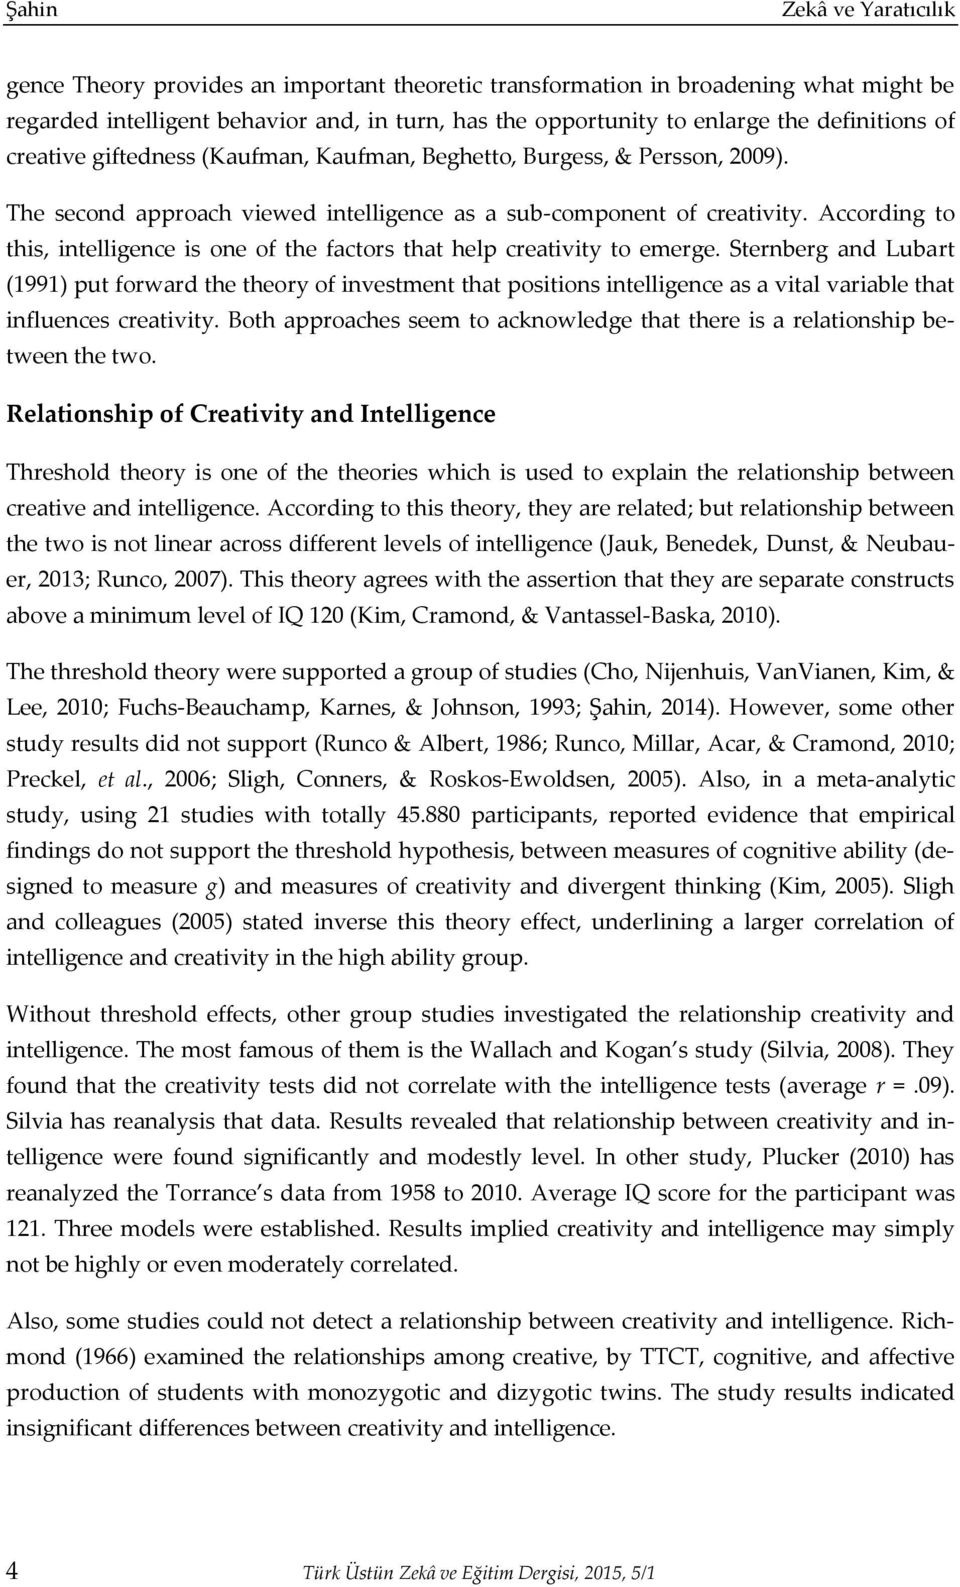 According to this, intelligence is one of the factors that help creativity to emerge.